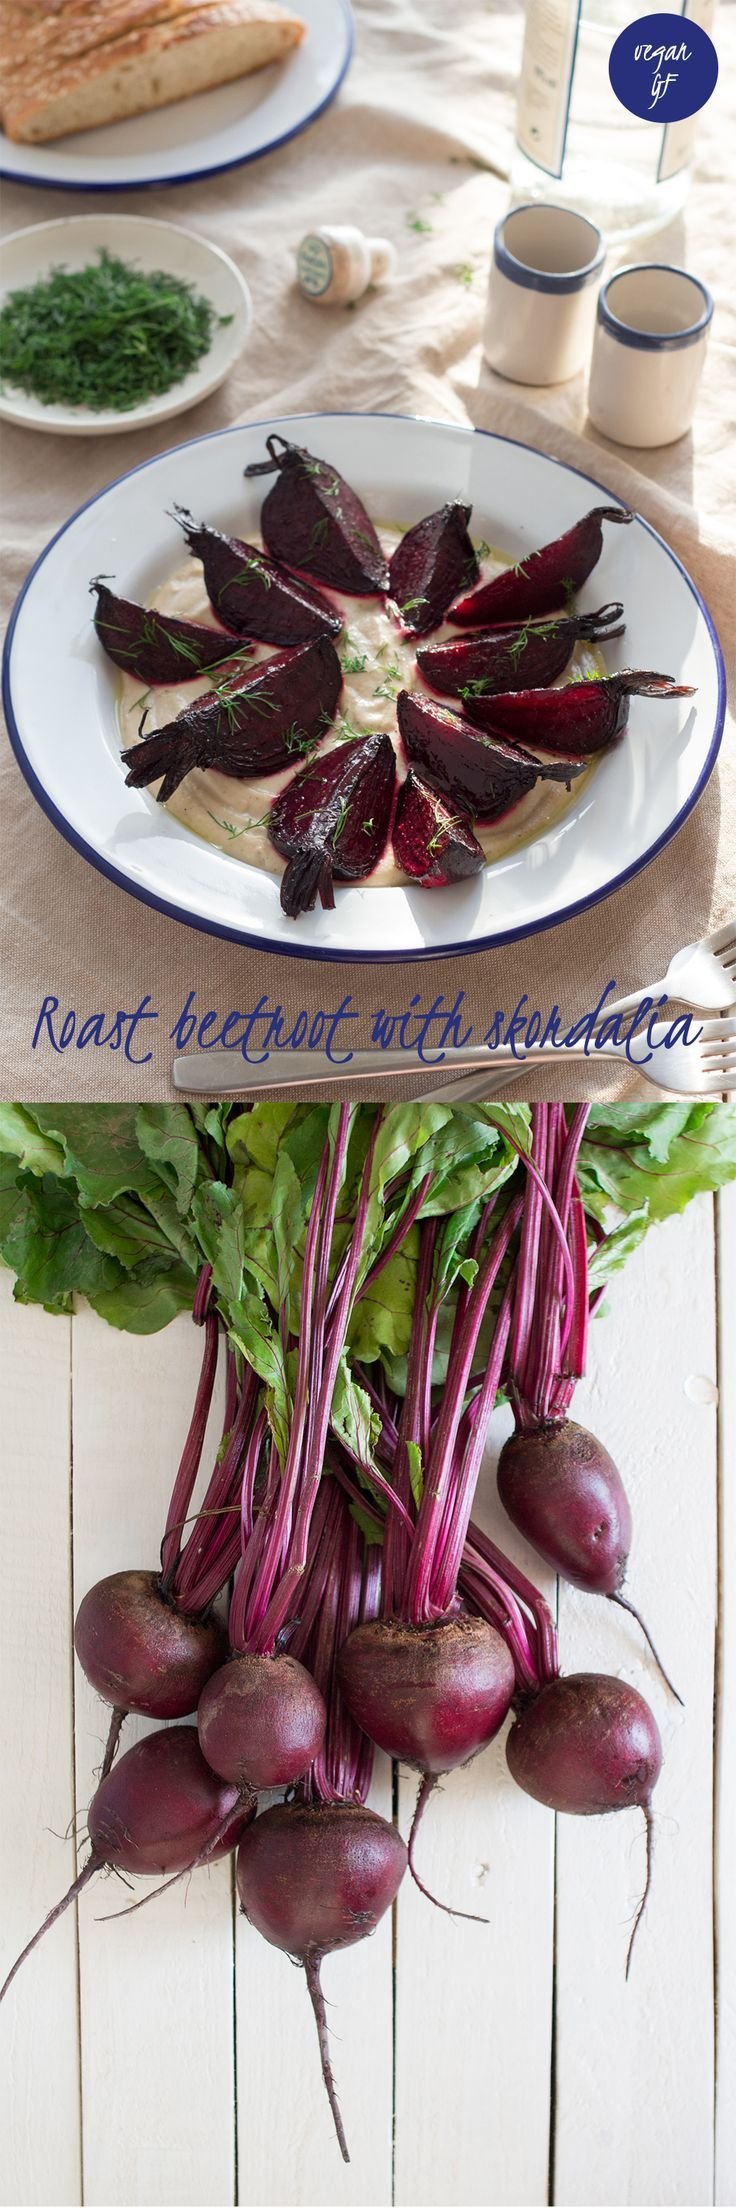 Beetroot with Greek skordalia sauce is a classic Greek dish that's so simple yet to die for. Skordalia is a garlicky dip that complements sweet beetroot super well.